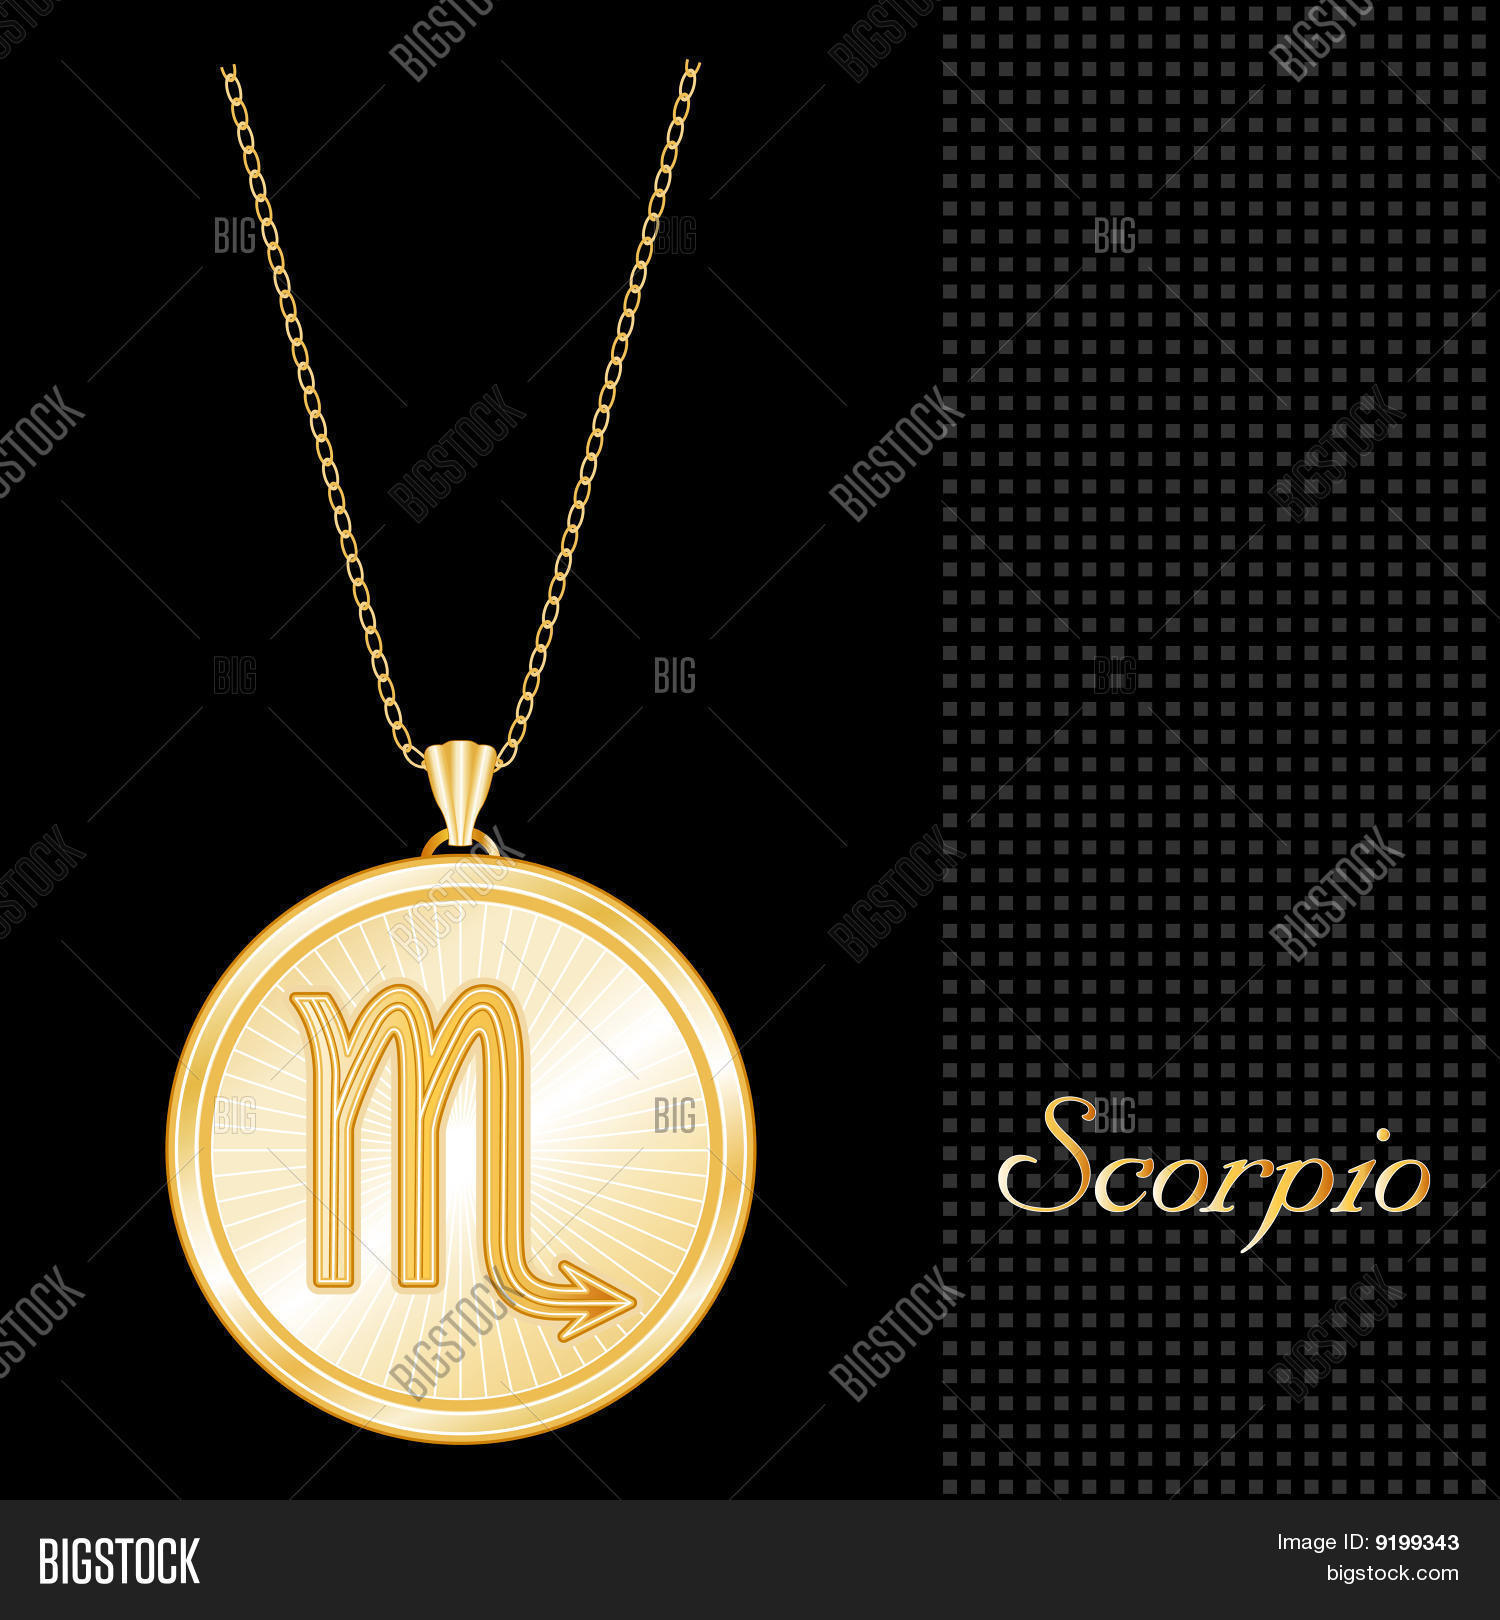 library collections medallion scorpio jewelry of virtual pointe sandi